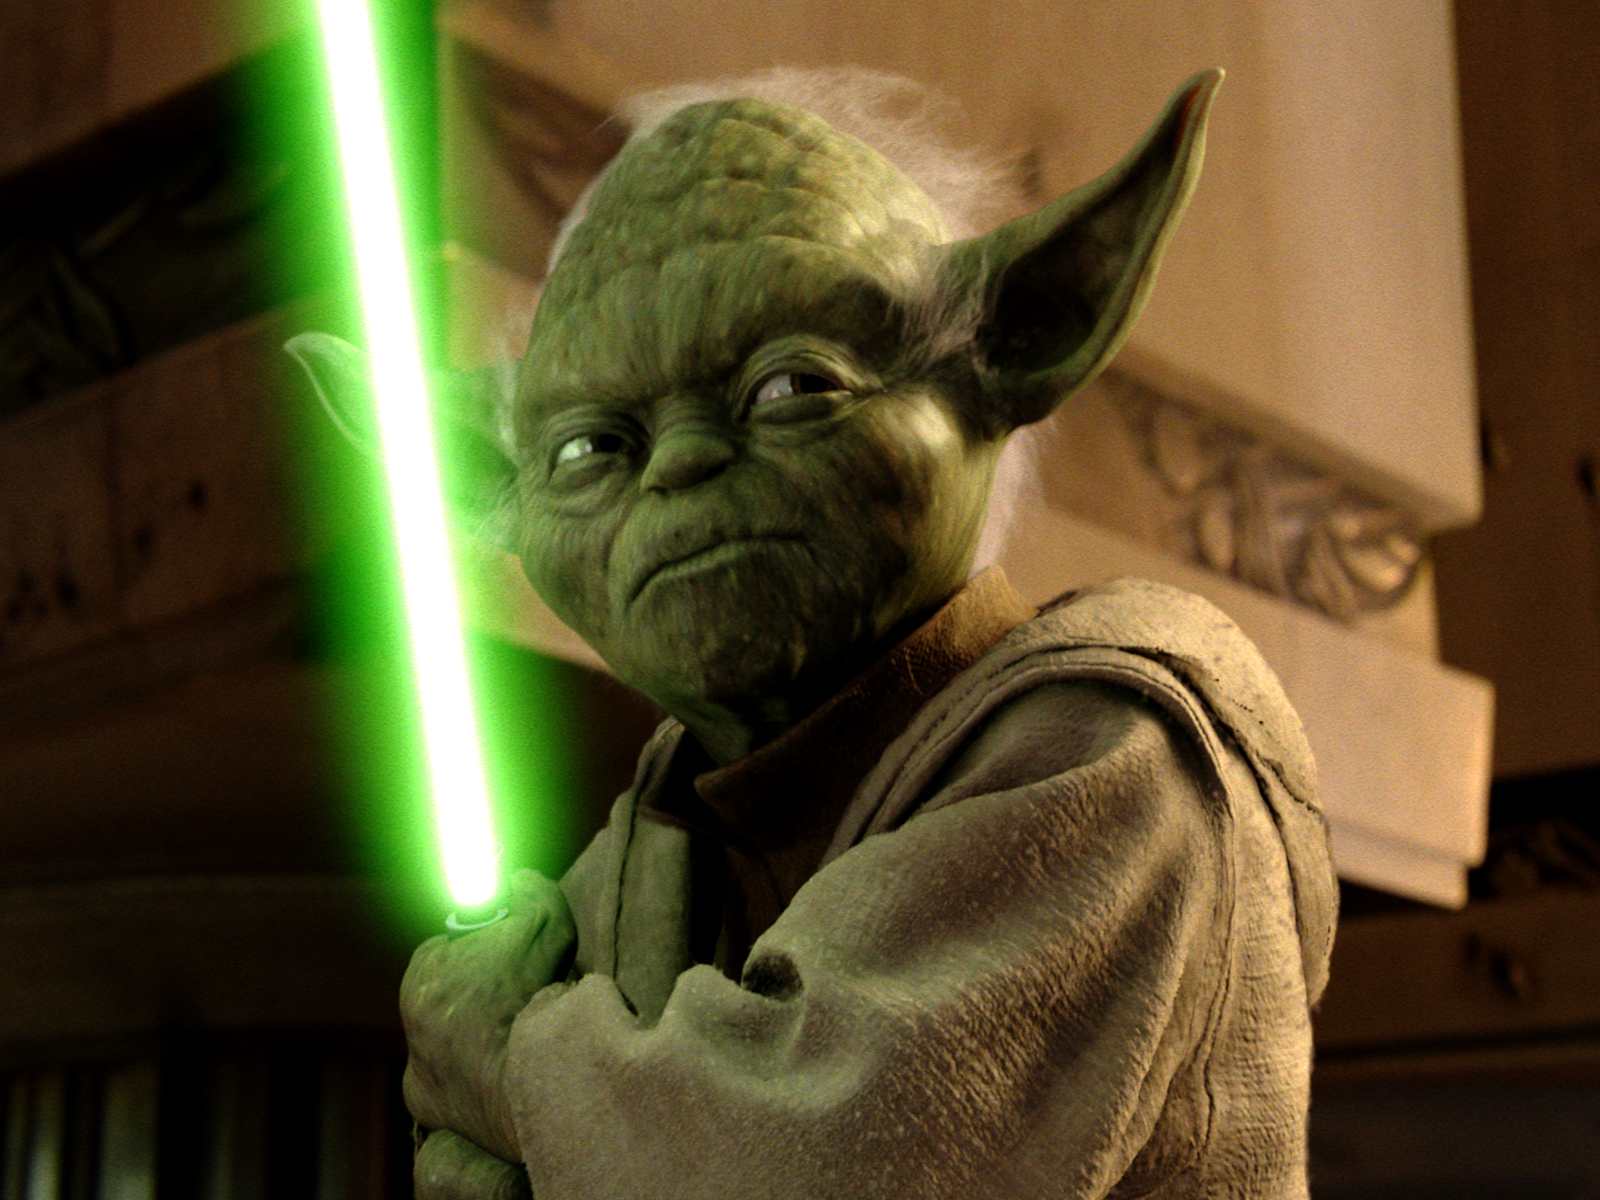 Master Yoda Star Wars HD Wallpapers HD Wallpapers Backgrounds 1600x1200